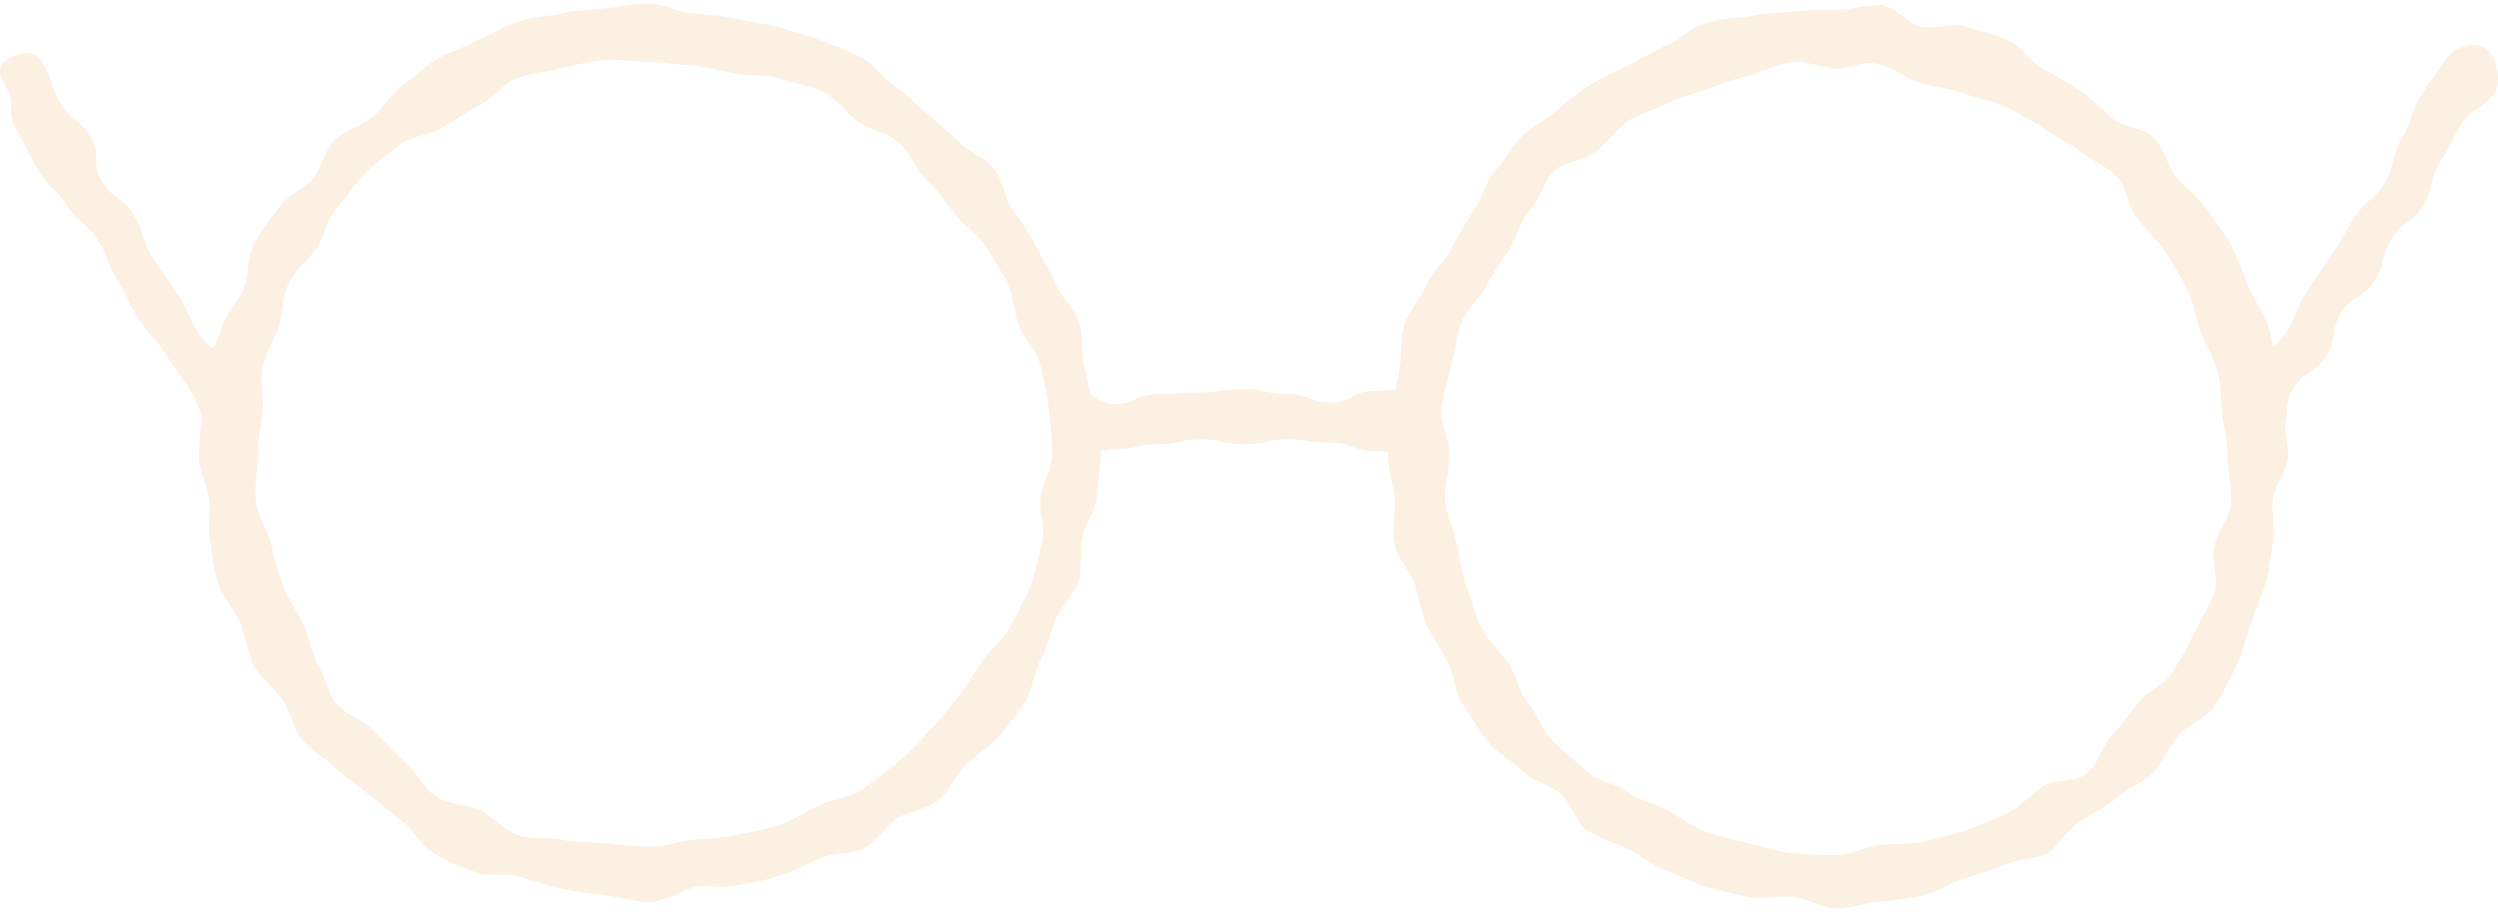 style glasses front view Vector images in PNG and SVG | Icons8 Illustrations